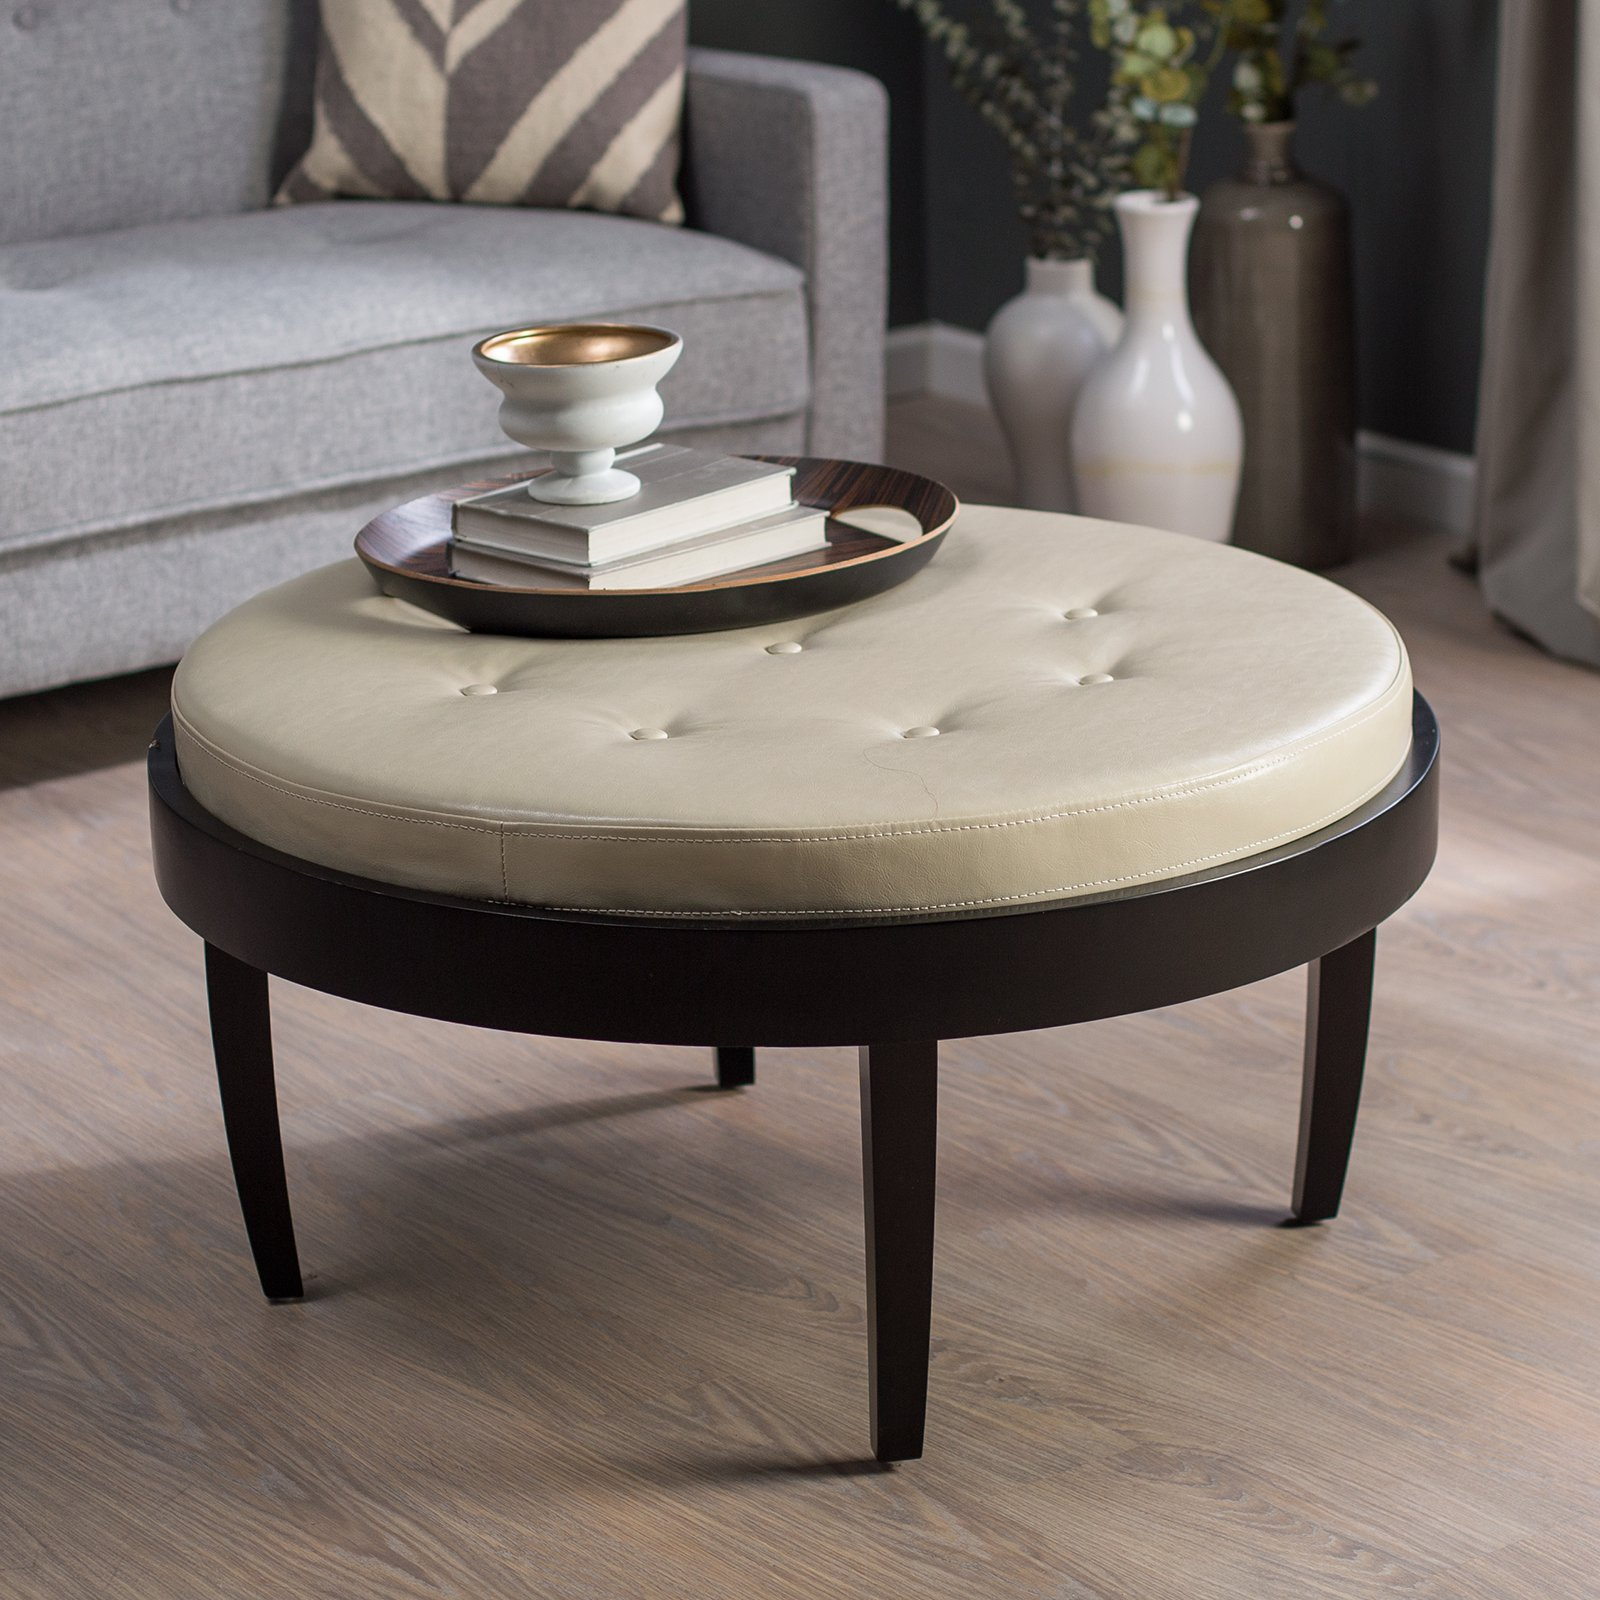 Button Tufted Coffee Tables With Widely Used Citation Espresso Coffee Table Ottoman Cream Cushion – Walmart (Gallery 14 of 20)